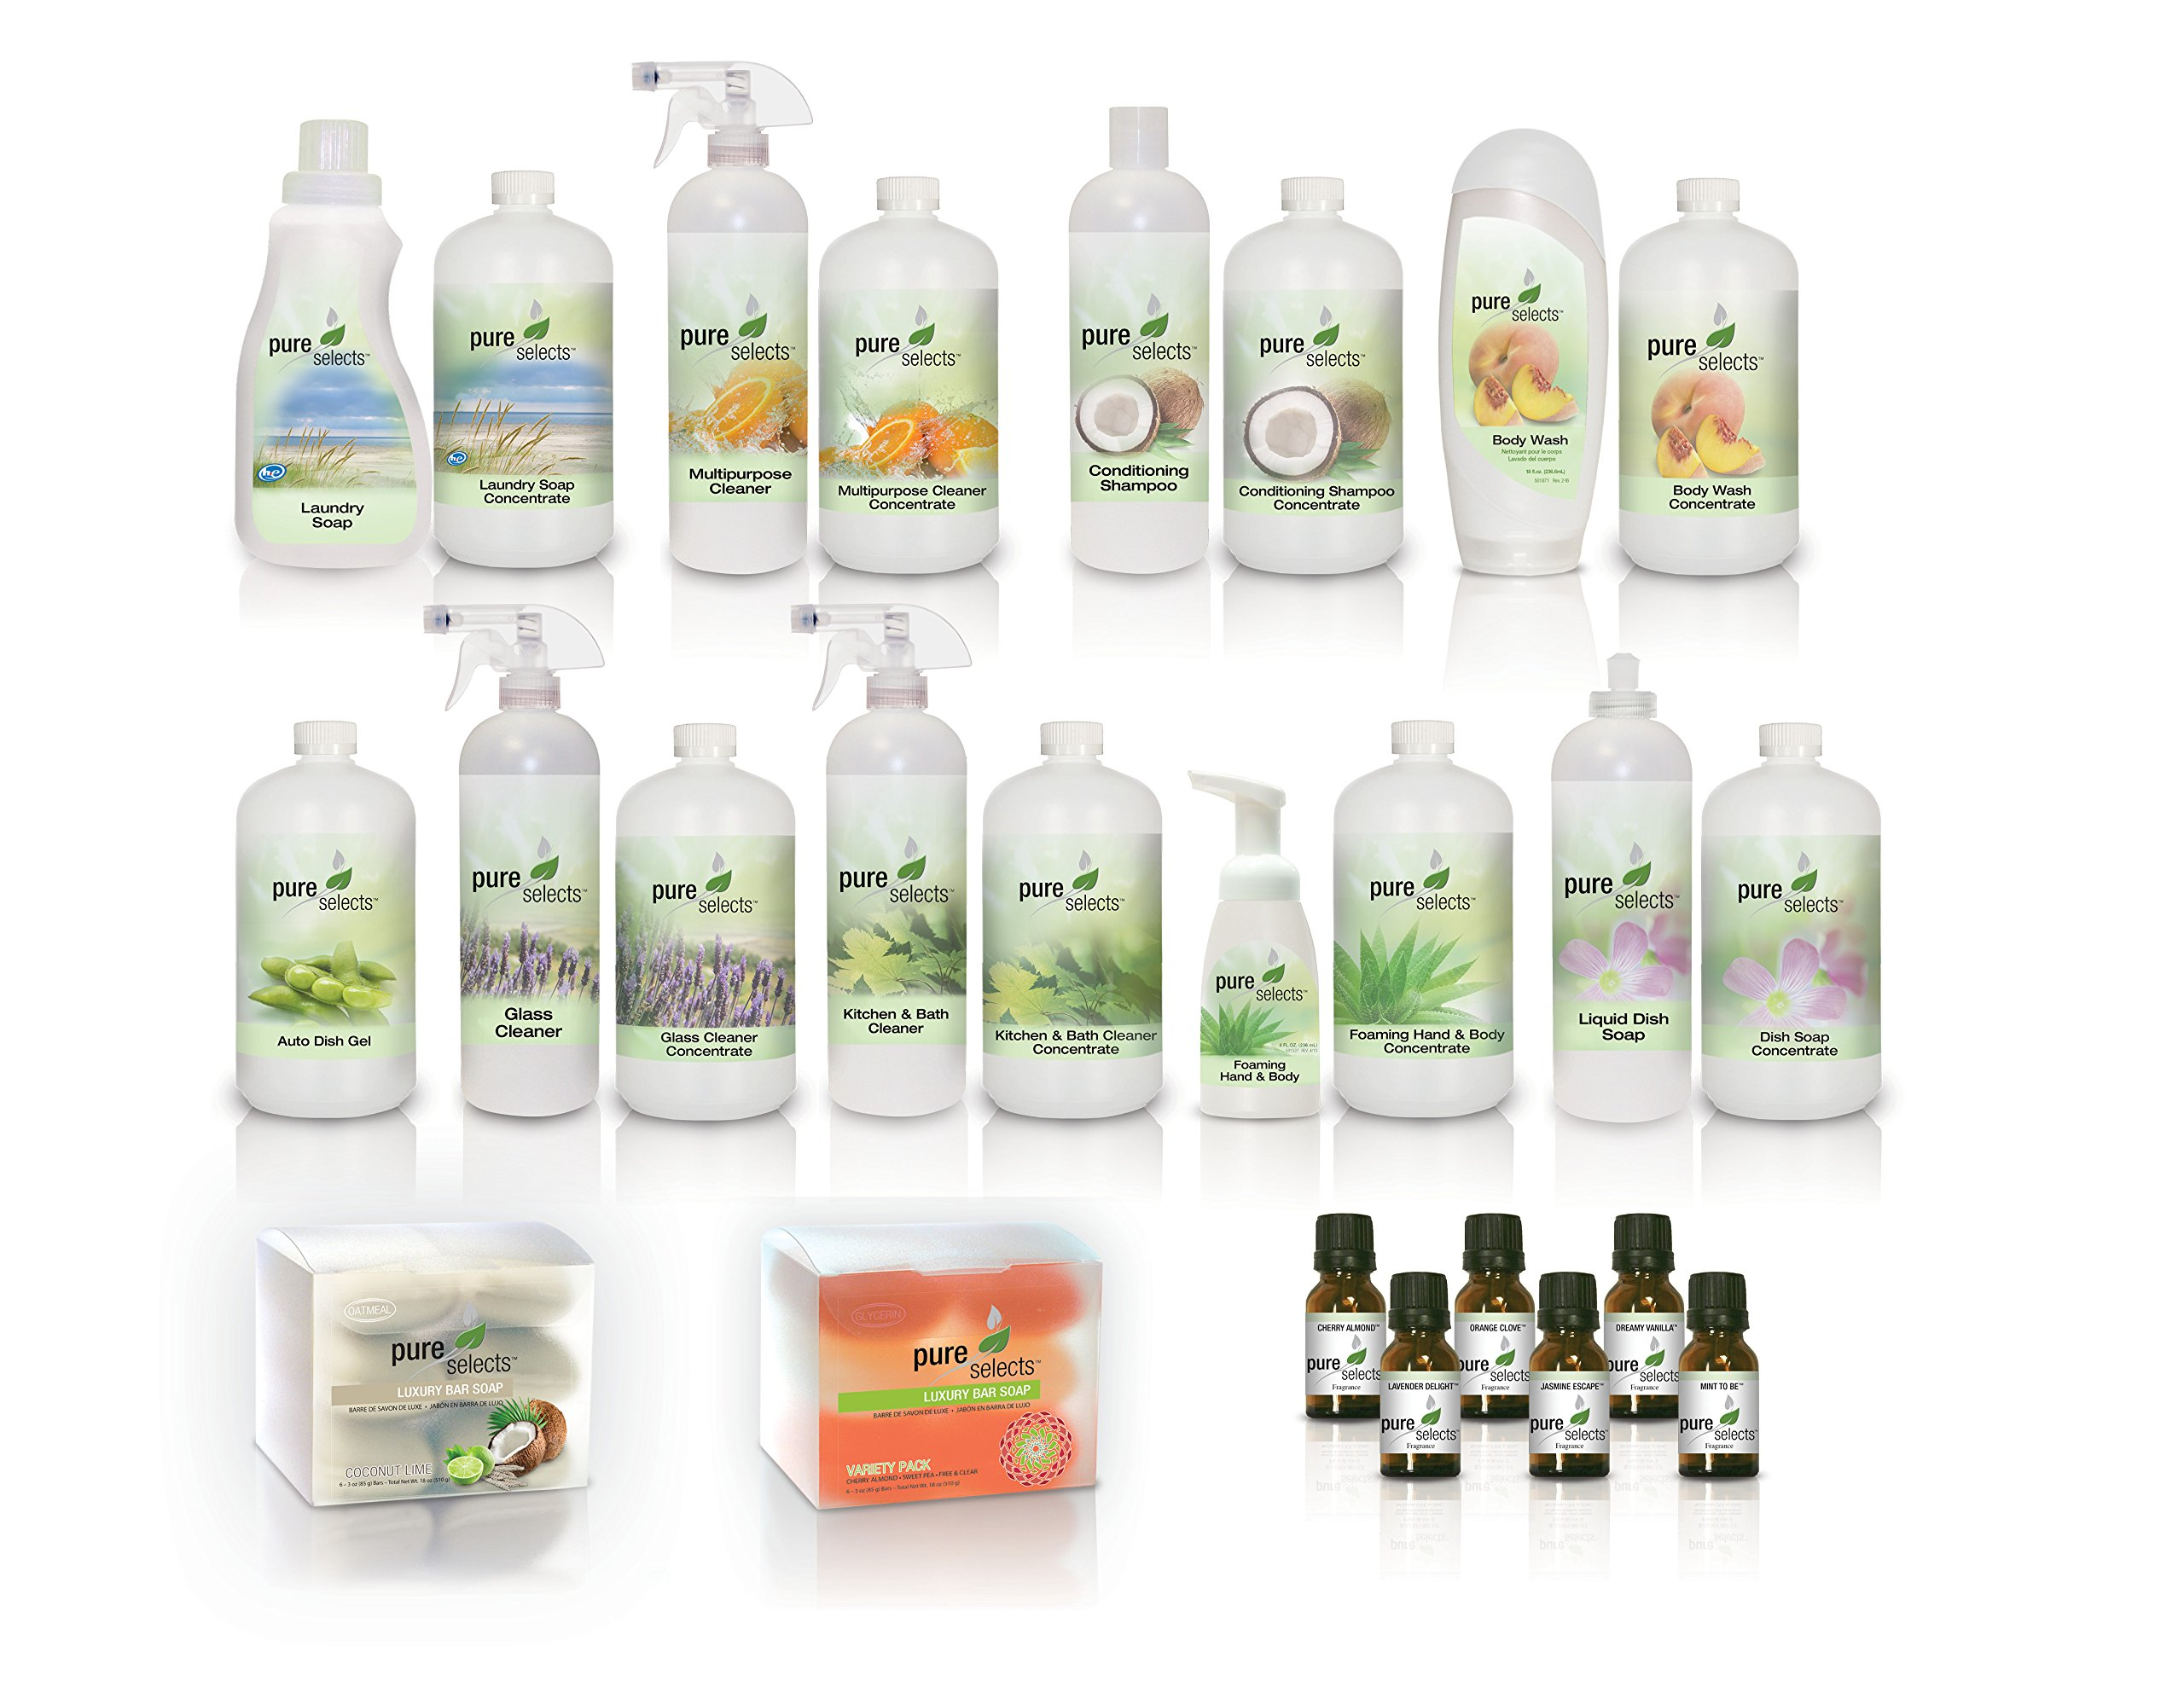 Pure Selects DELUXE Home Bundle • All Natural • No Dye • No Added Fragrance • Plant Derived Over $1000.00 in products when compared to buying ready to use products.